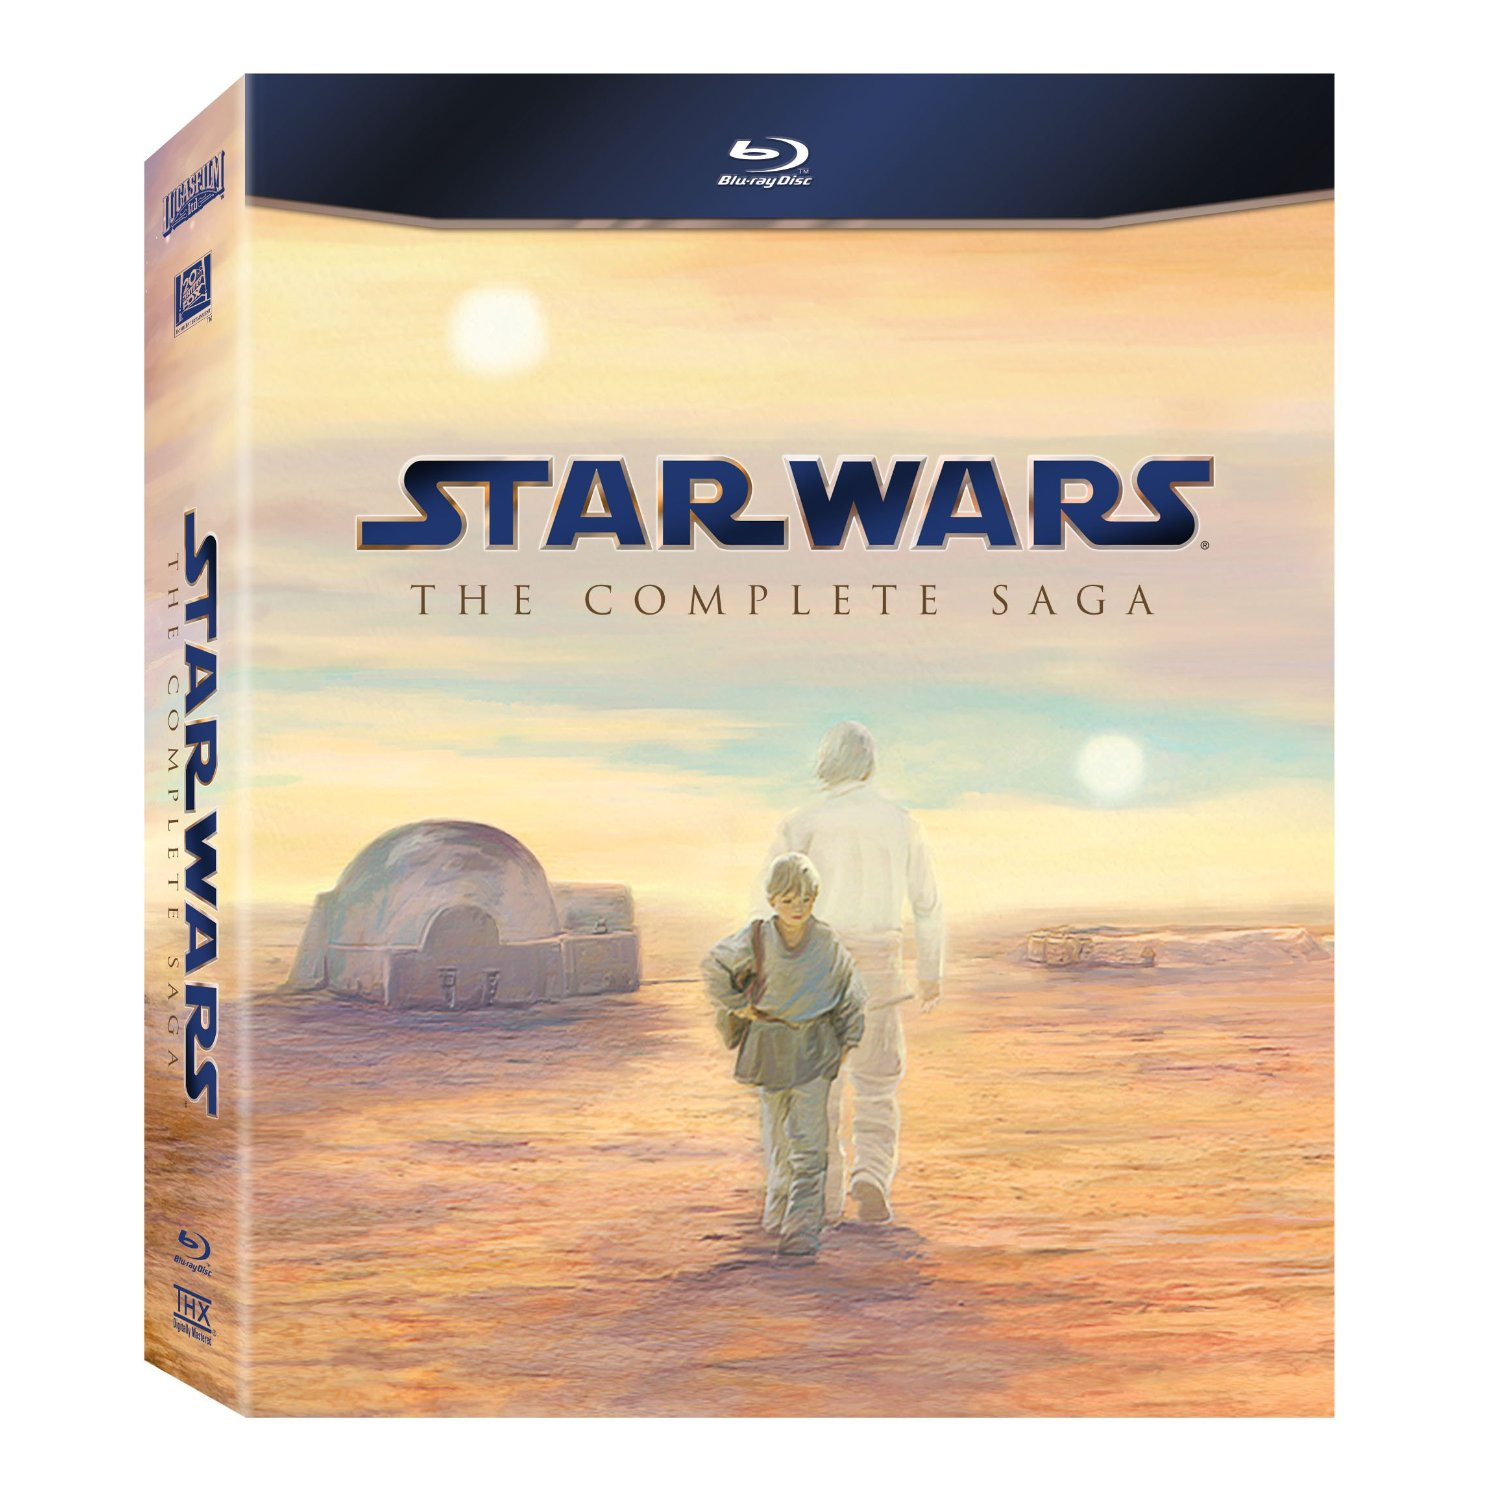 <em>Star Wars</em> Saga Blu-Ray Release Date Announced